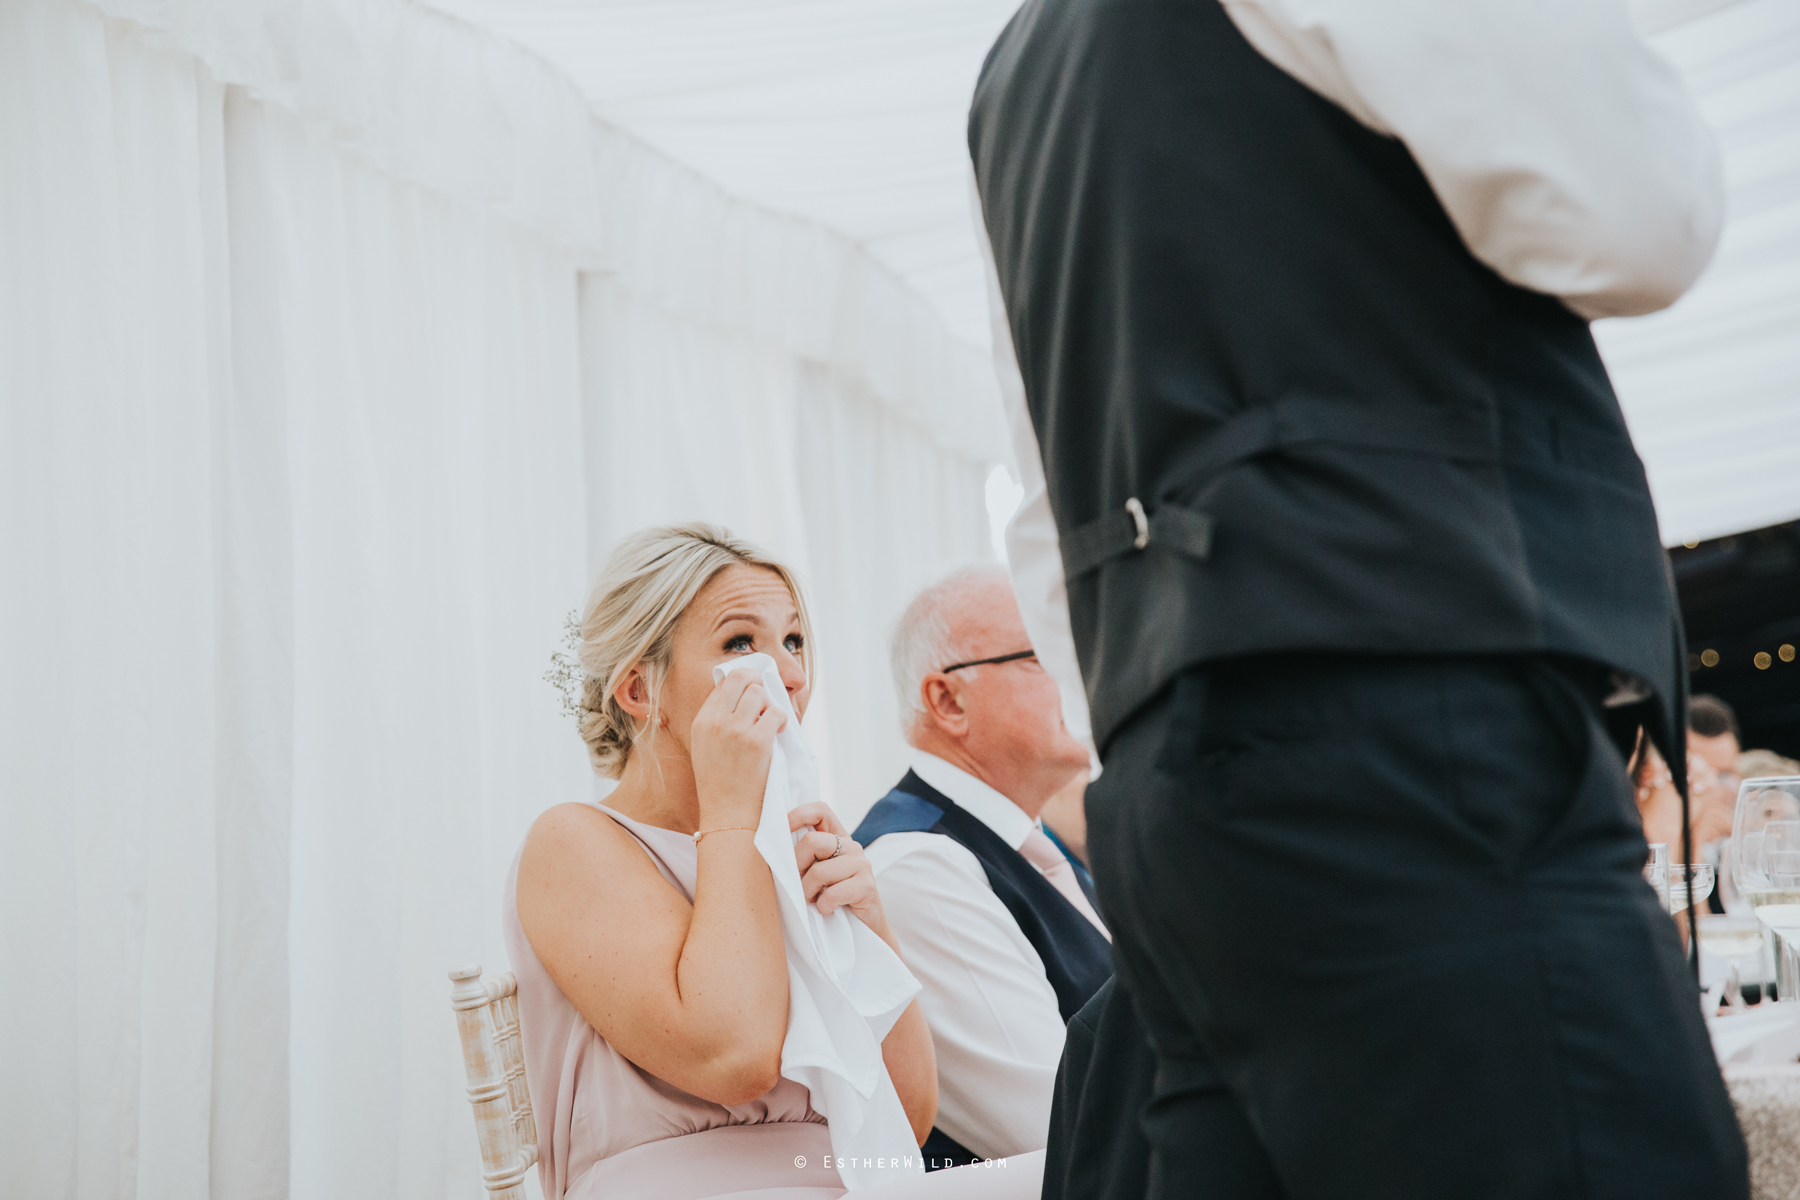 Wootton_Wedding_Copyright_Esther_Wild_Photographer_IMG_2969.jpg